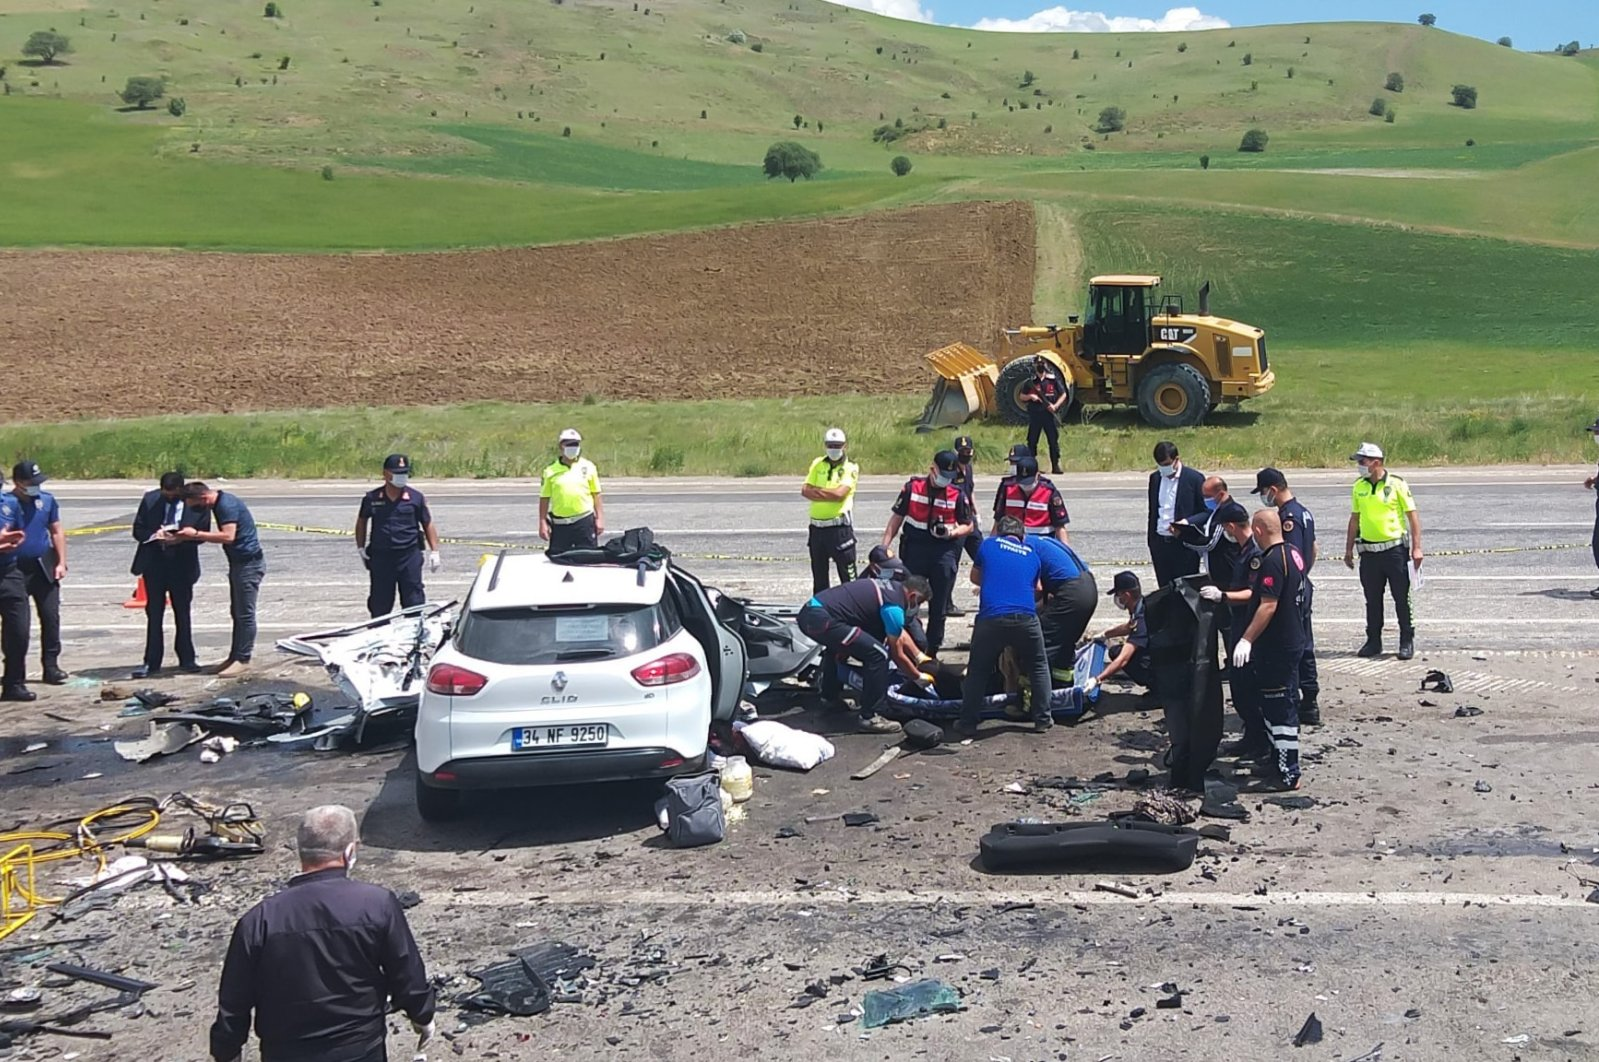 A view of the scene of the crash, in Sivas, central Turkey, June 3, 2021. (AA PHOTO)